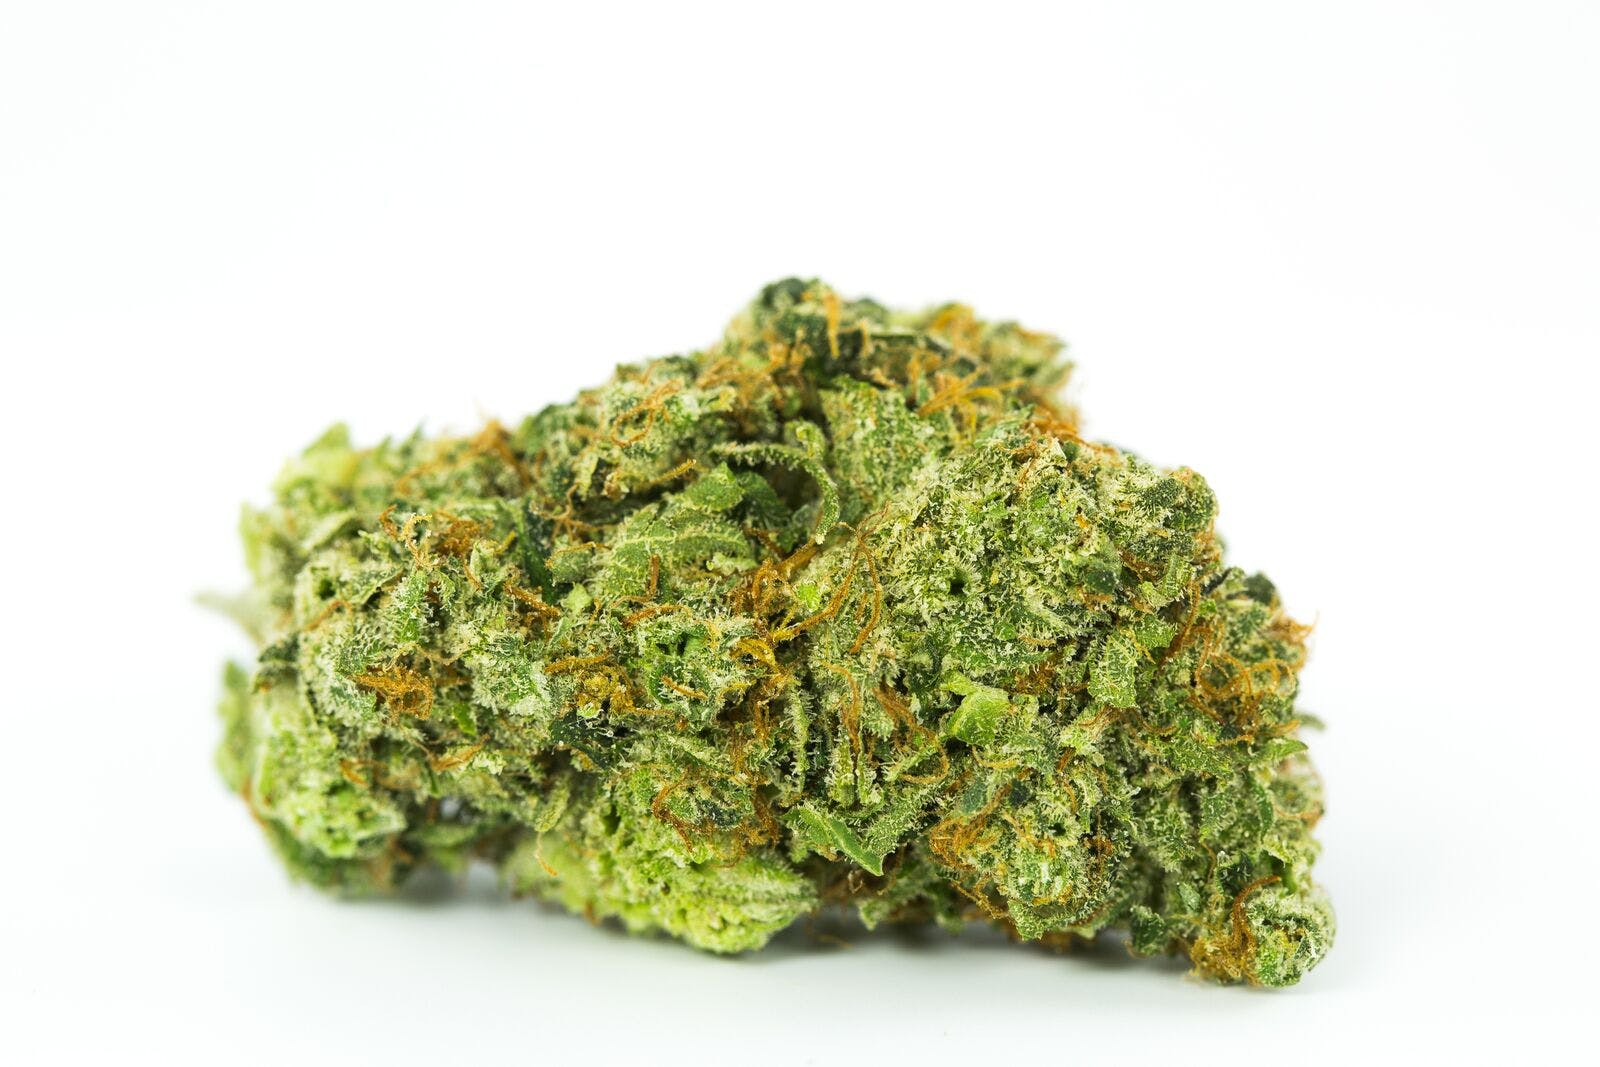 Sour Lemon OG Weed; Sour Lemon OG Cannabis Strain; Sour Lemon Hybrid Marijuana Strain